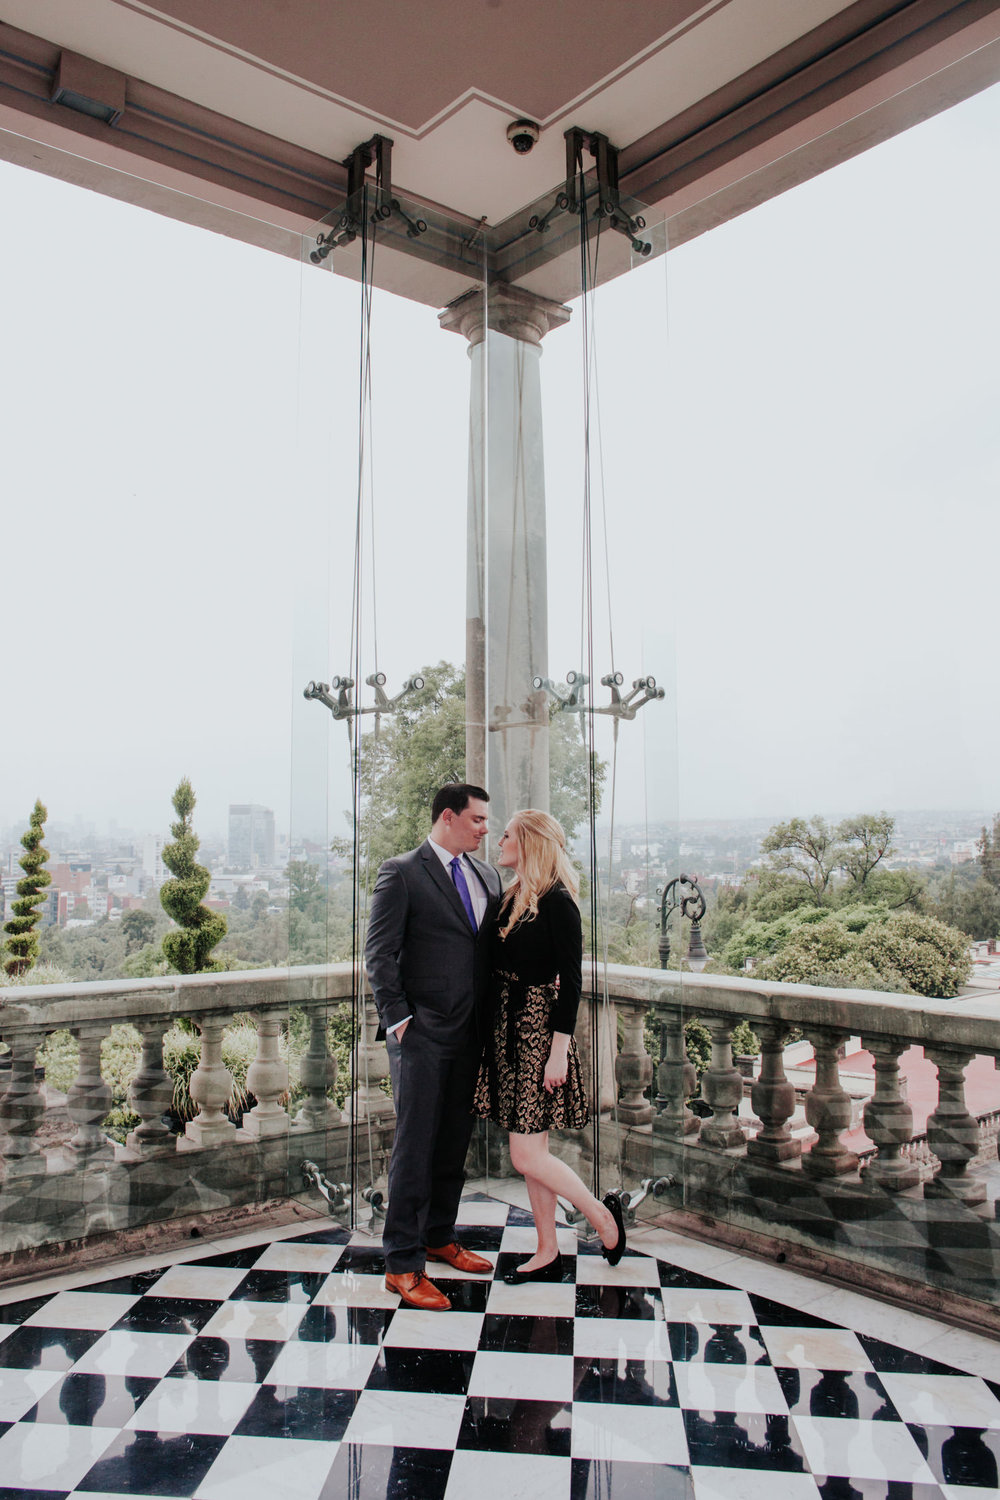 fotografo-mexico-df-boda-wedding-jw-marriot-hotel-polanco-chapultepec-pierce-120.jpg